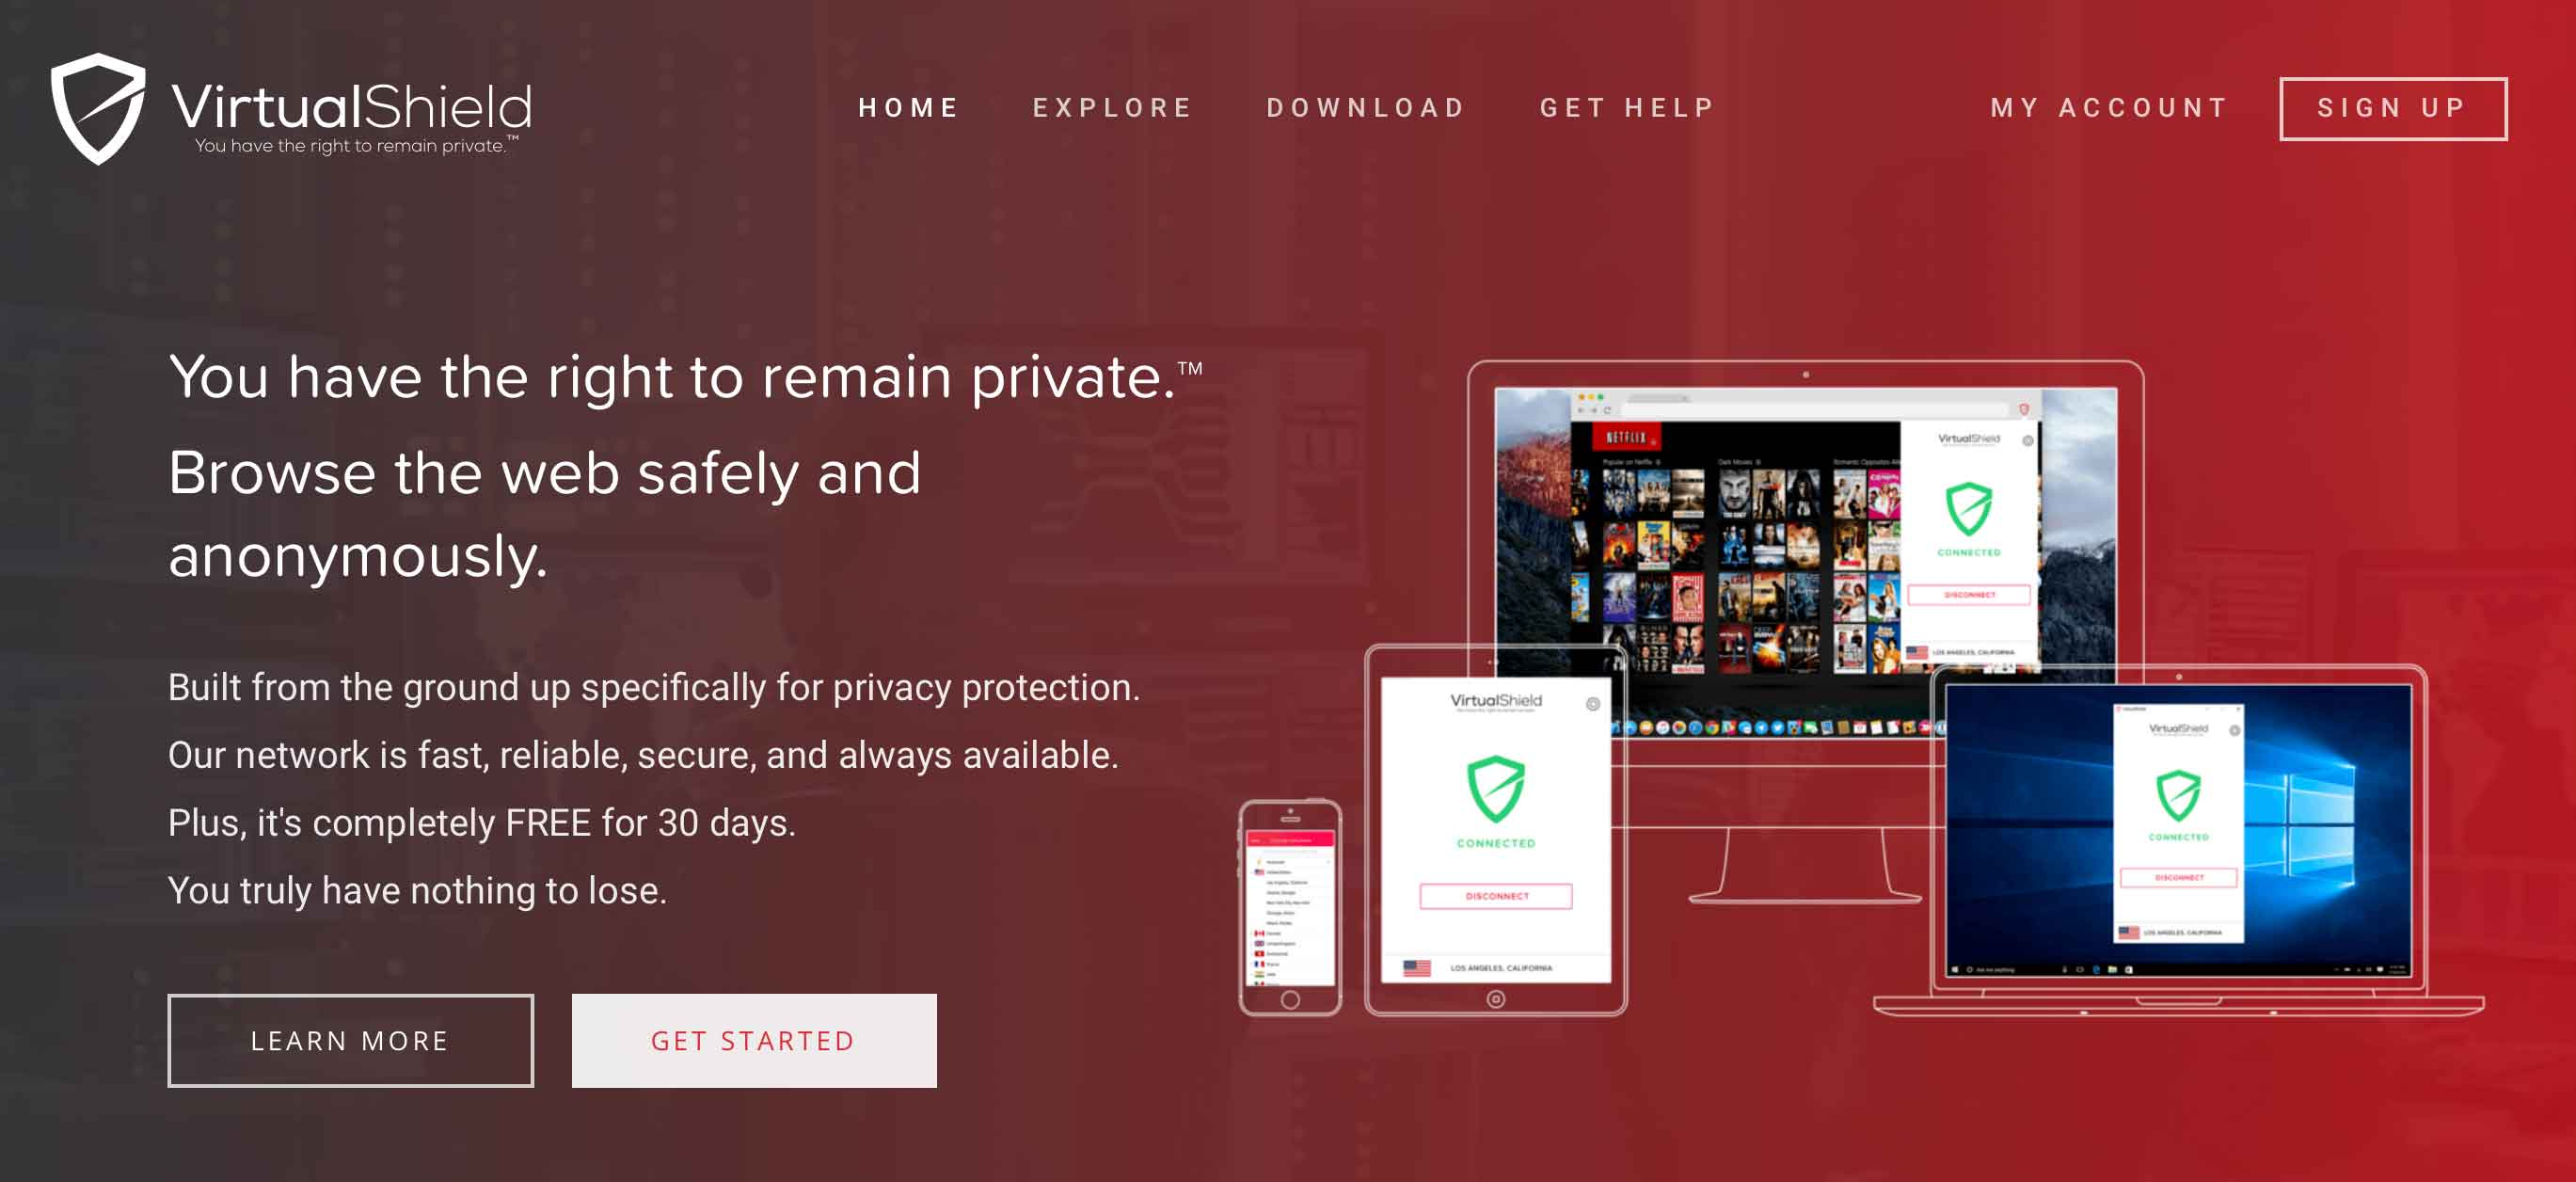 Virtual shield homepage screenshot